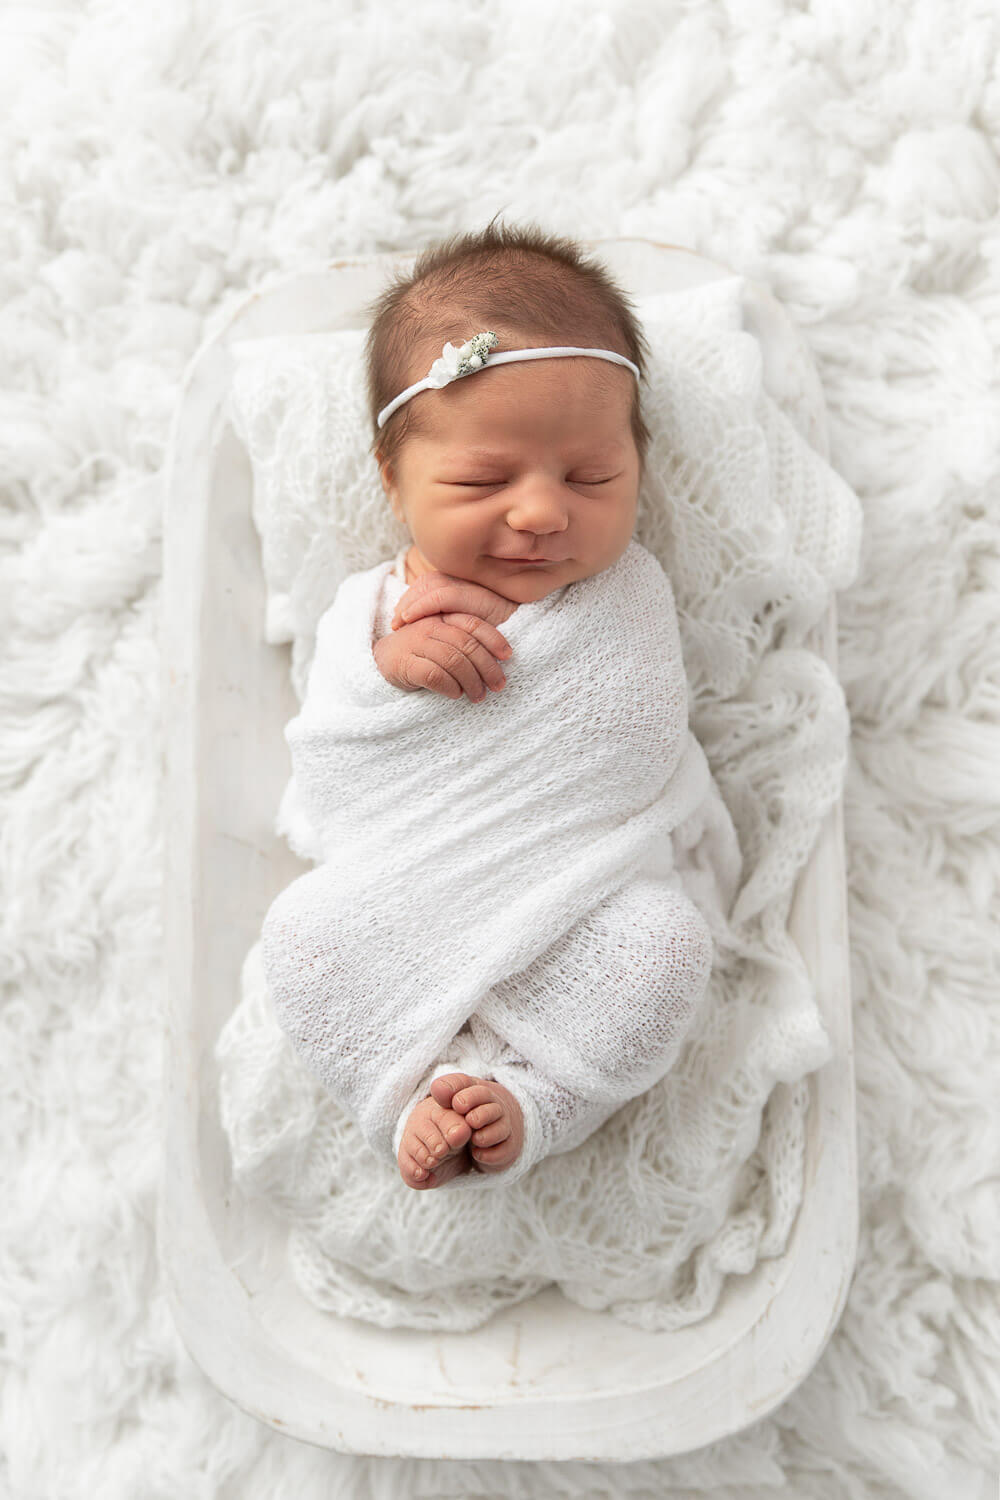 newborn baby girl wrapped in white cloth laying on a white dough bowl surrounded by white fur